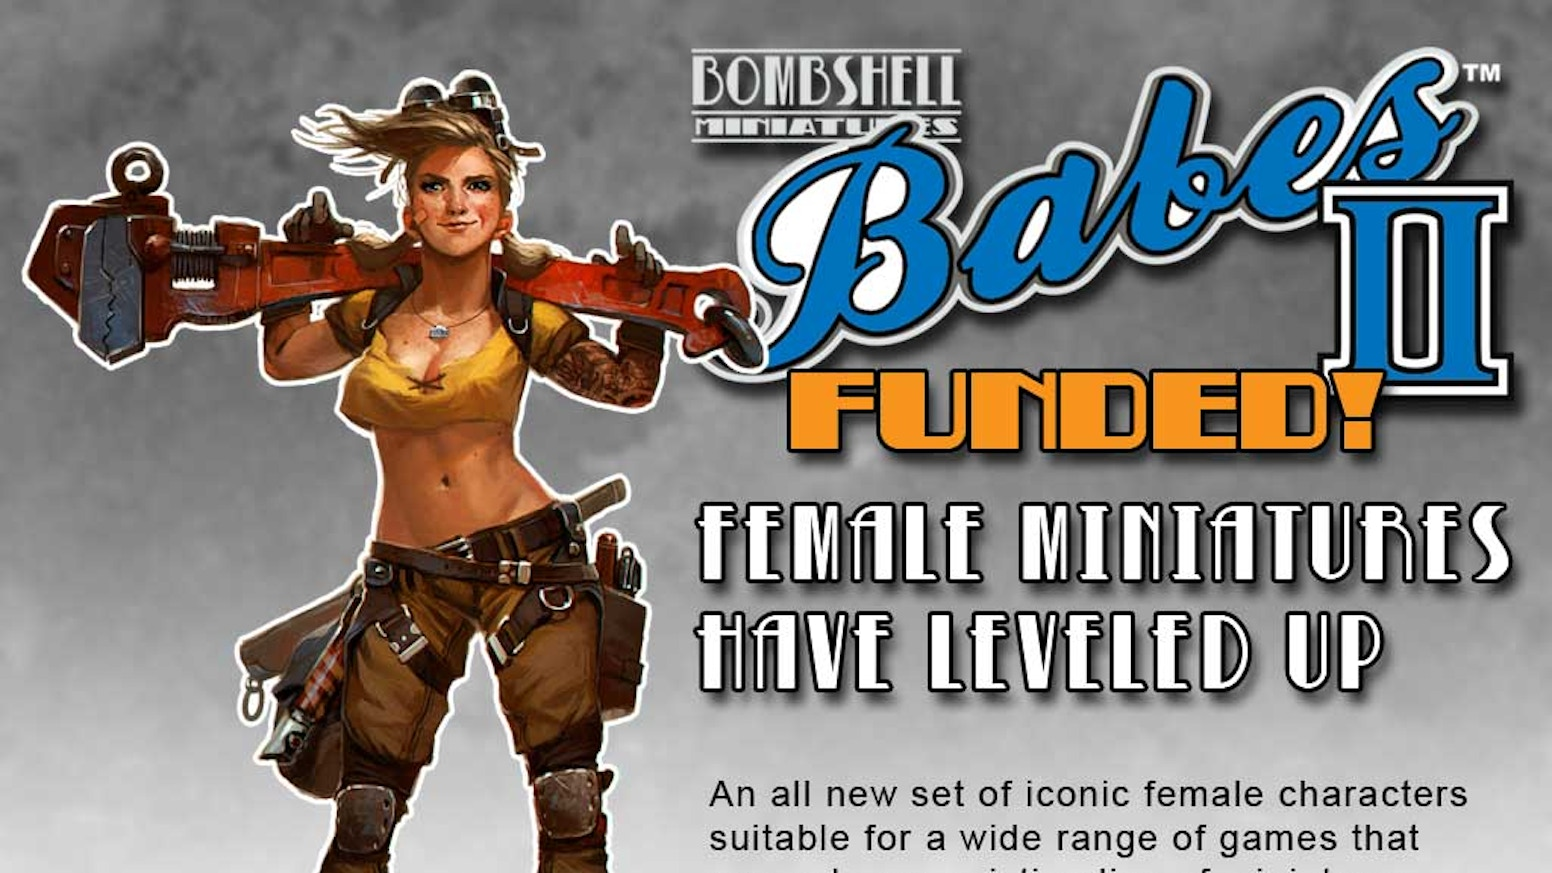 The second wave of all new miniatures for the tabletop gaming and painting community featuring iconic female characters.